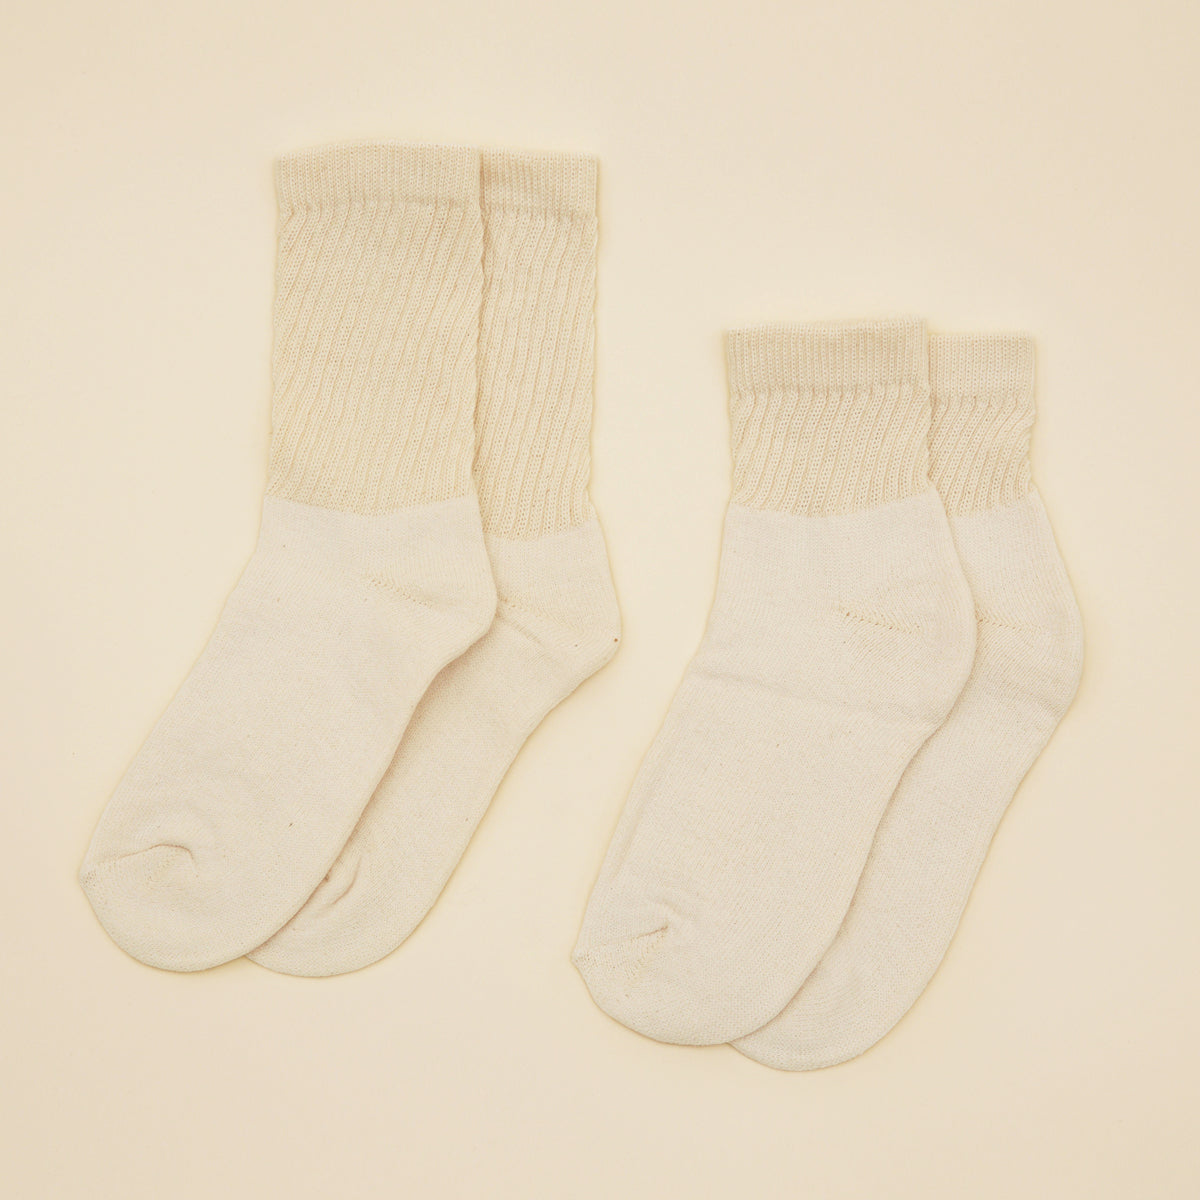 Organic Cotton Socks - Cream